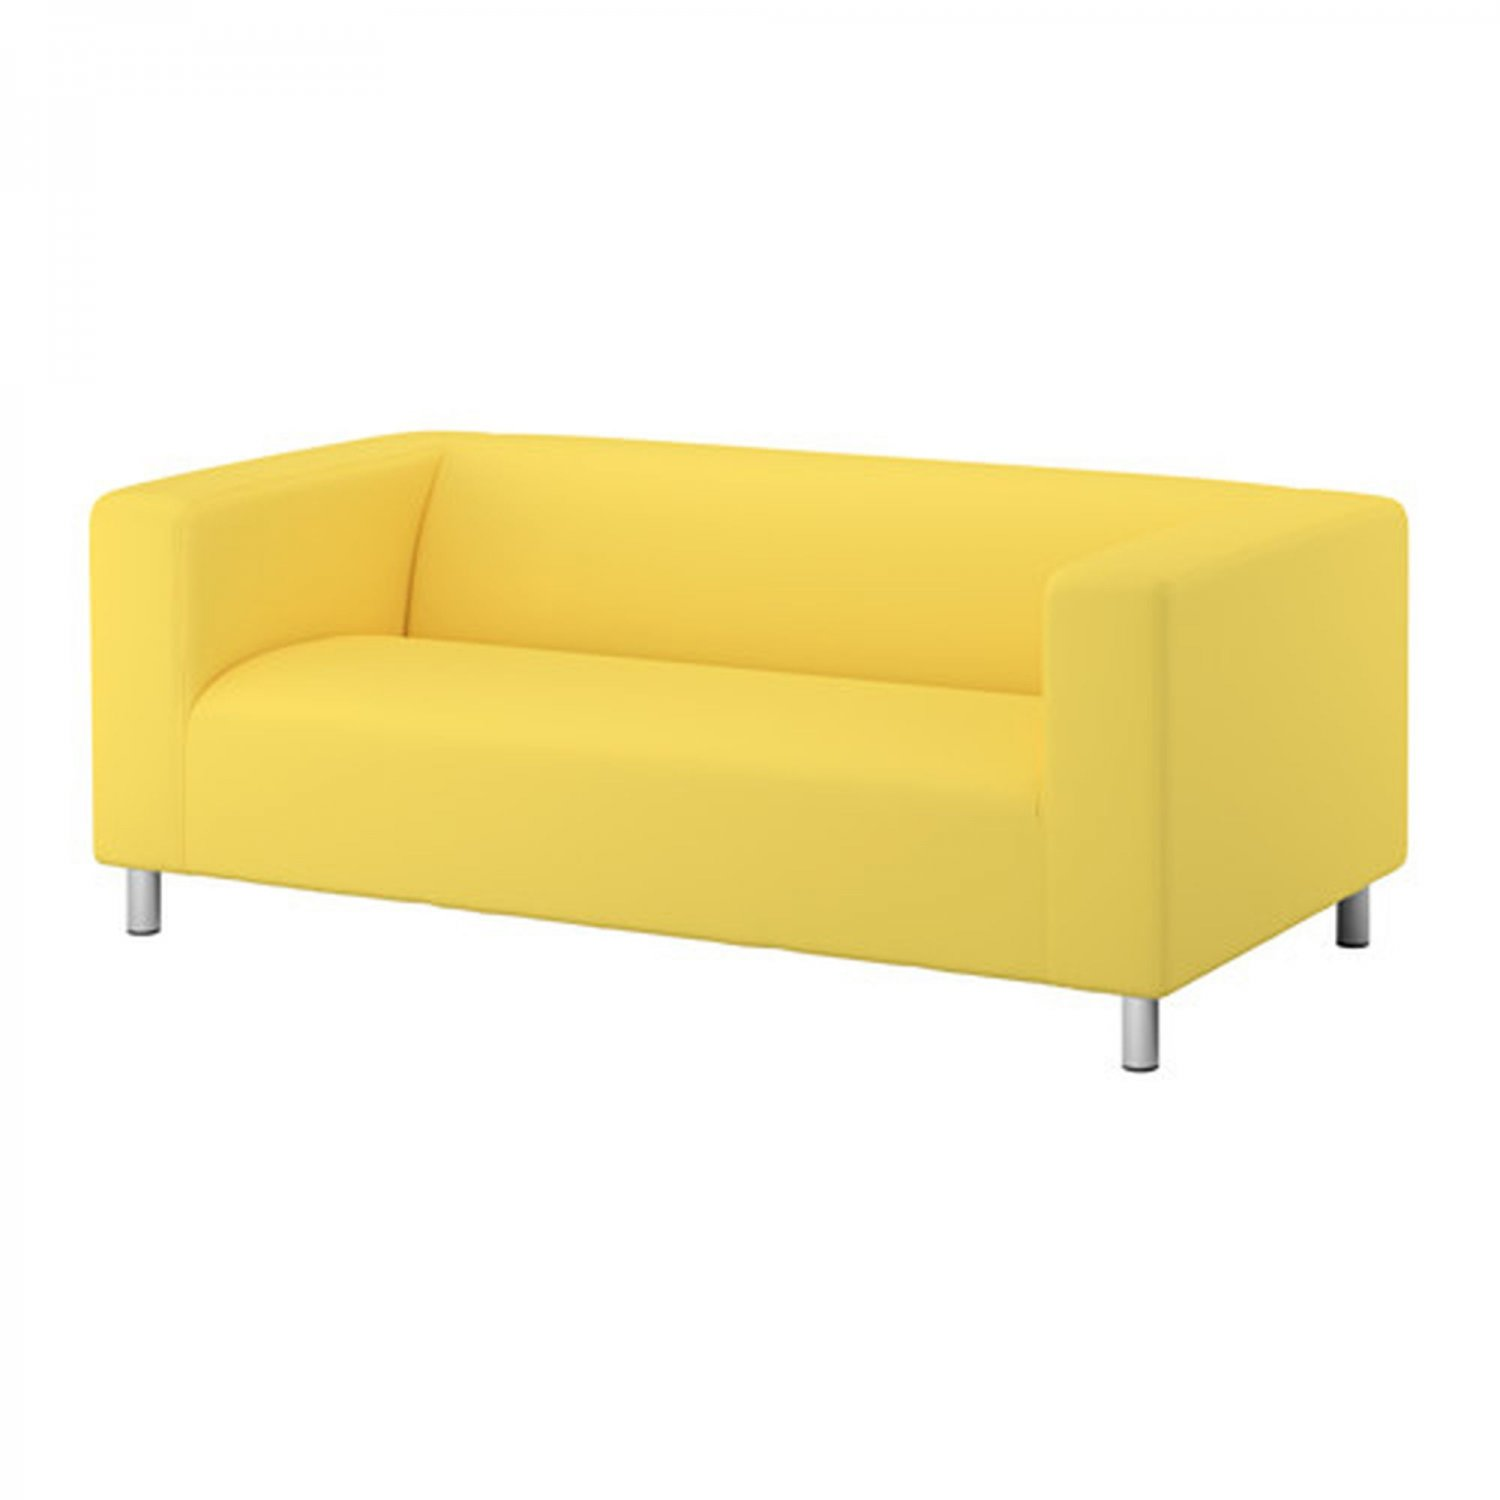 Sofa Klippan Ikea Klippan Loveseat Sofa Slipcover Cover Vissle Yellow